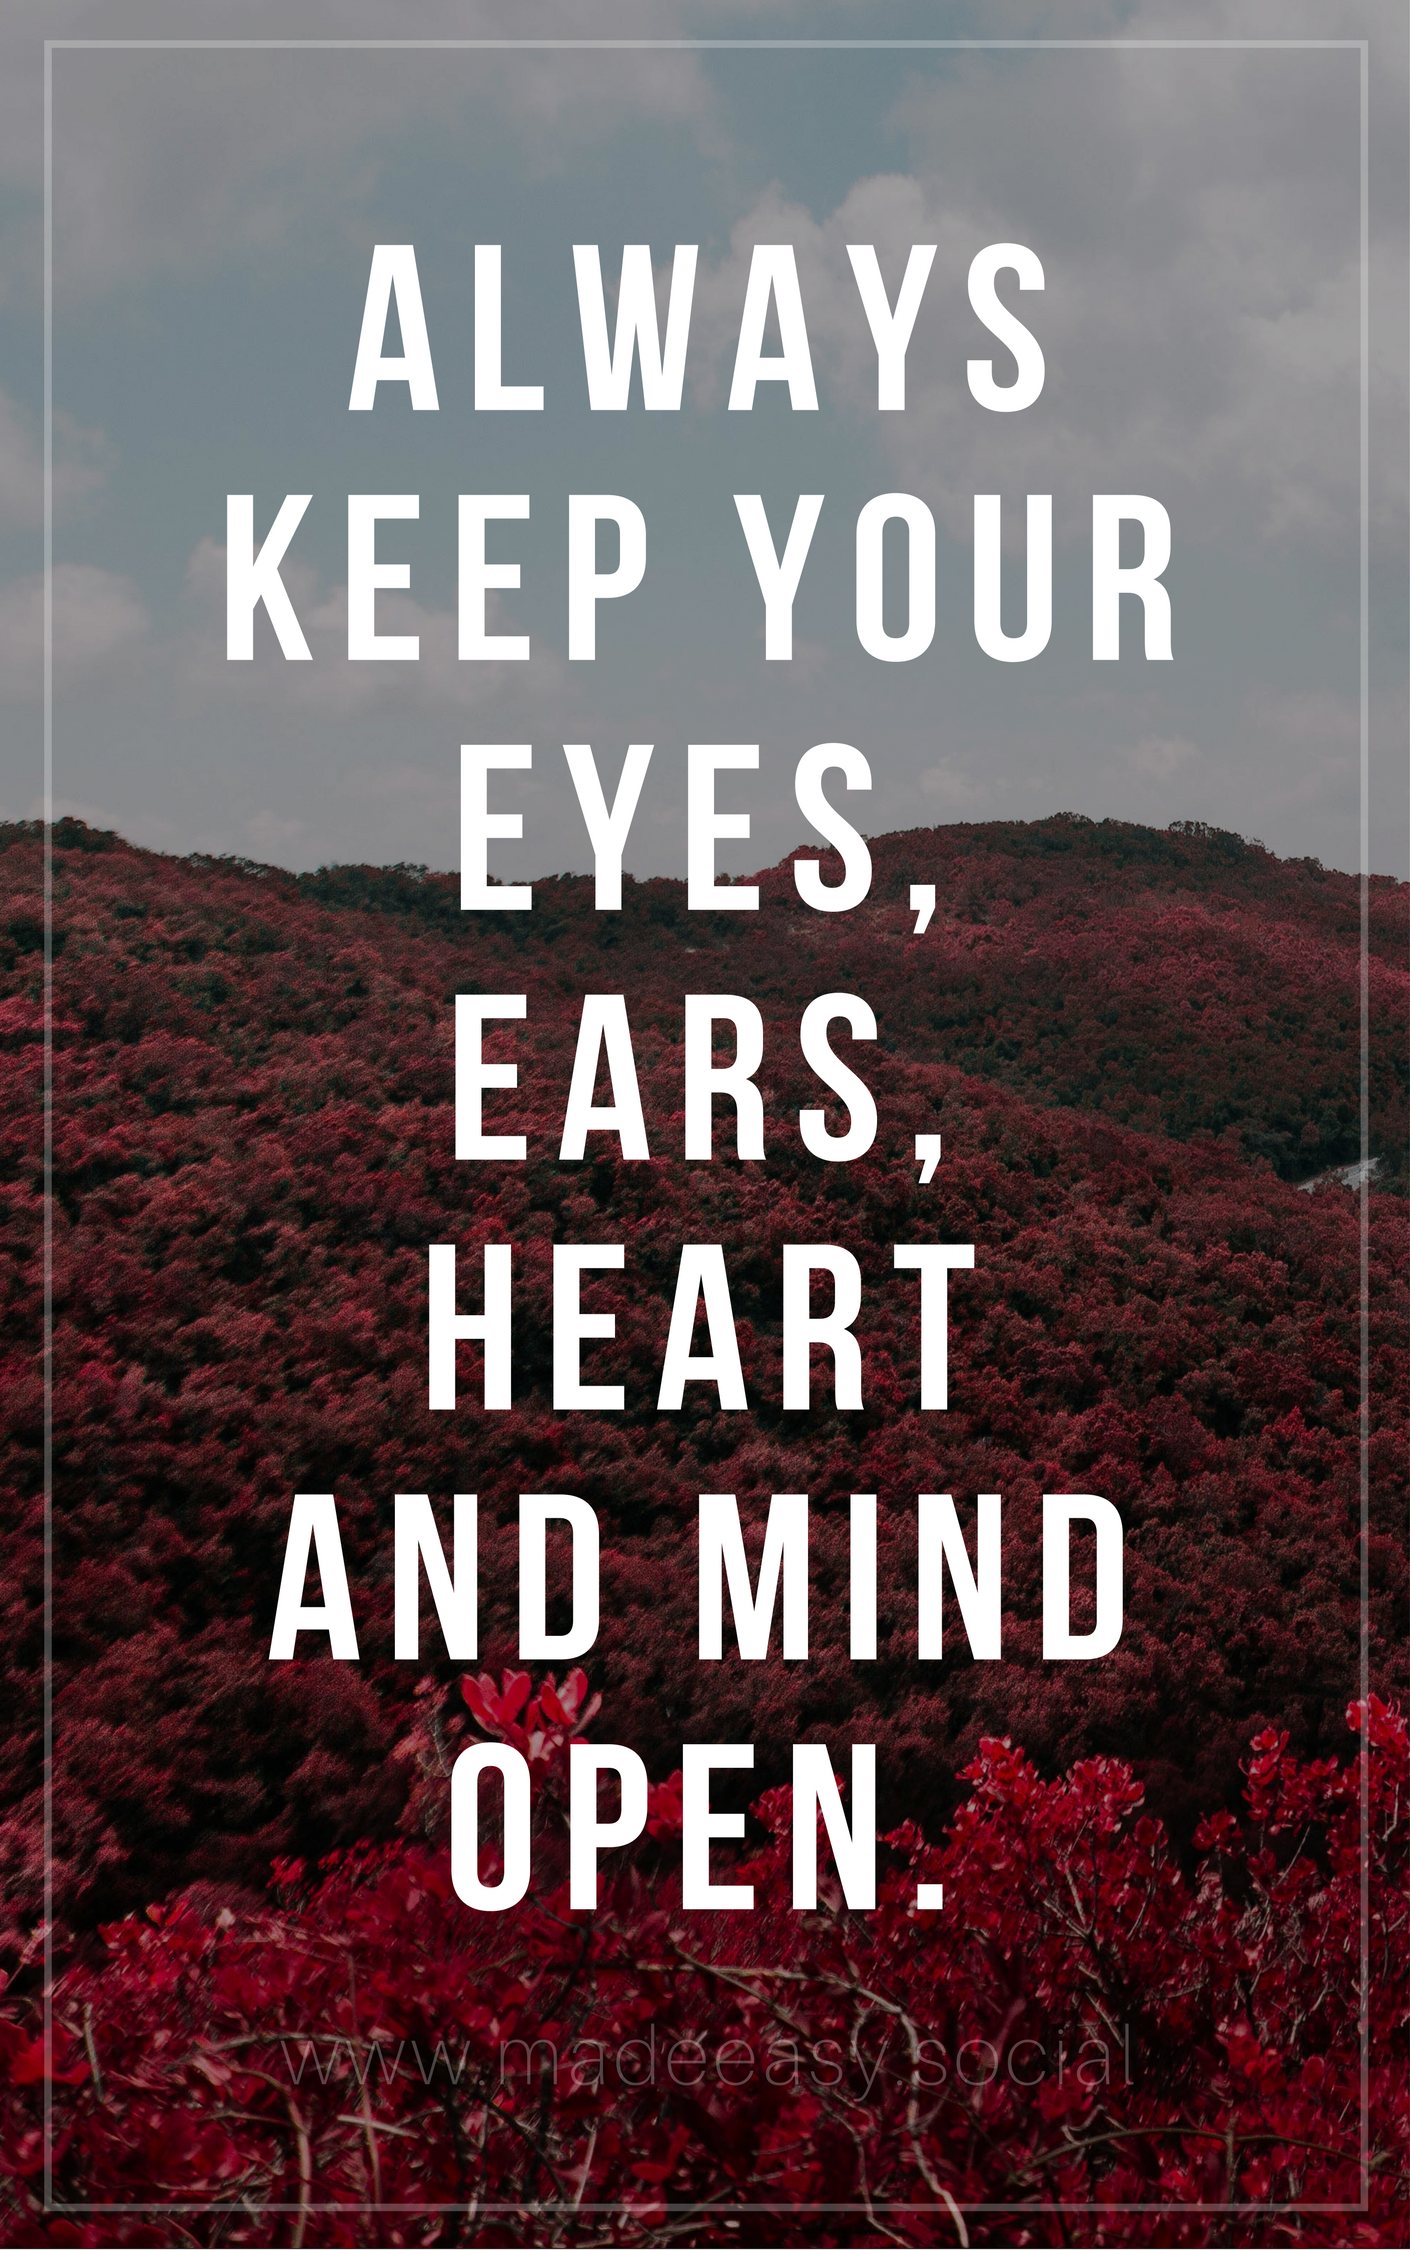 Always Keep Your Eyes Ears Heart And Mind Open Heart And Mind Mindfulness Open Minded